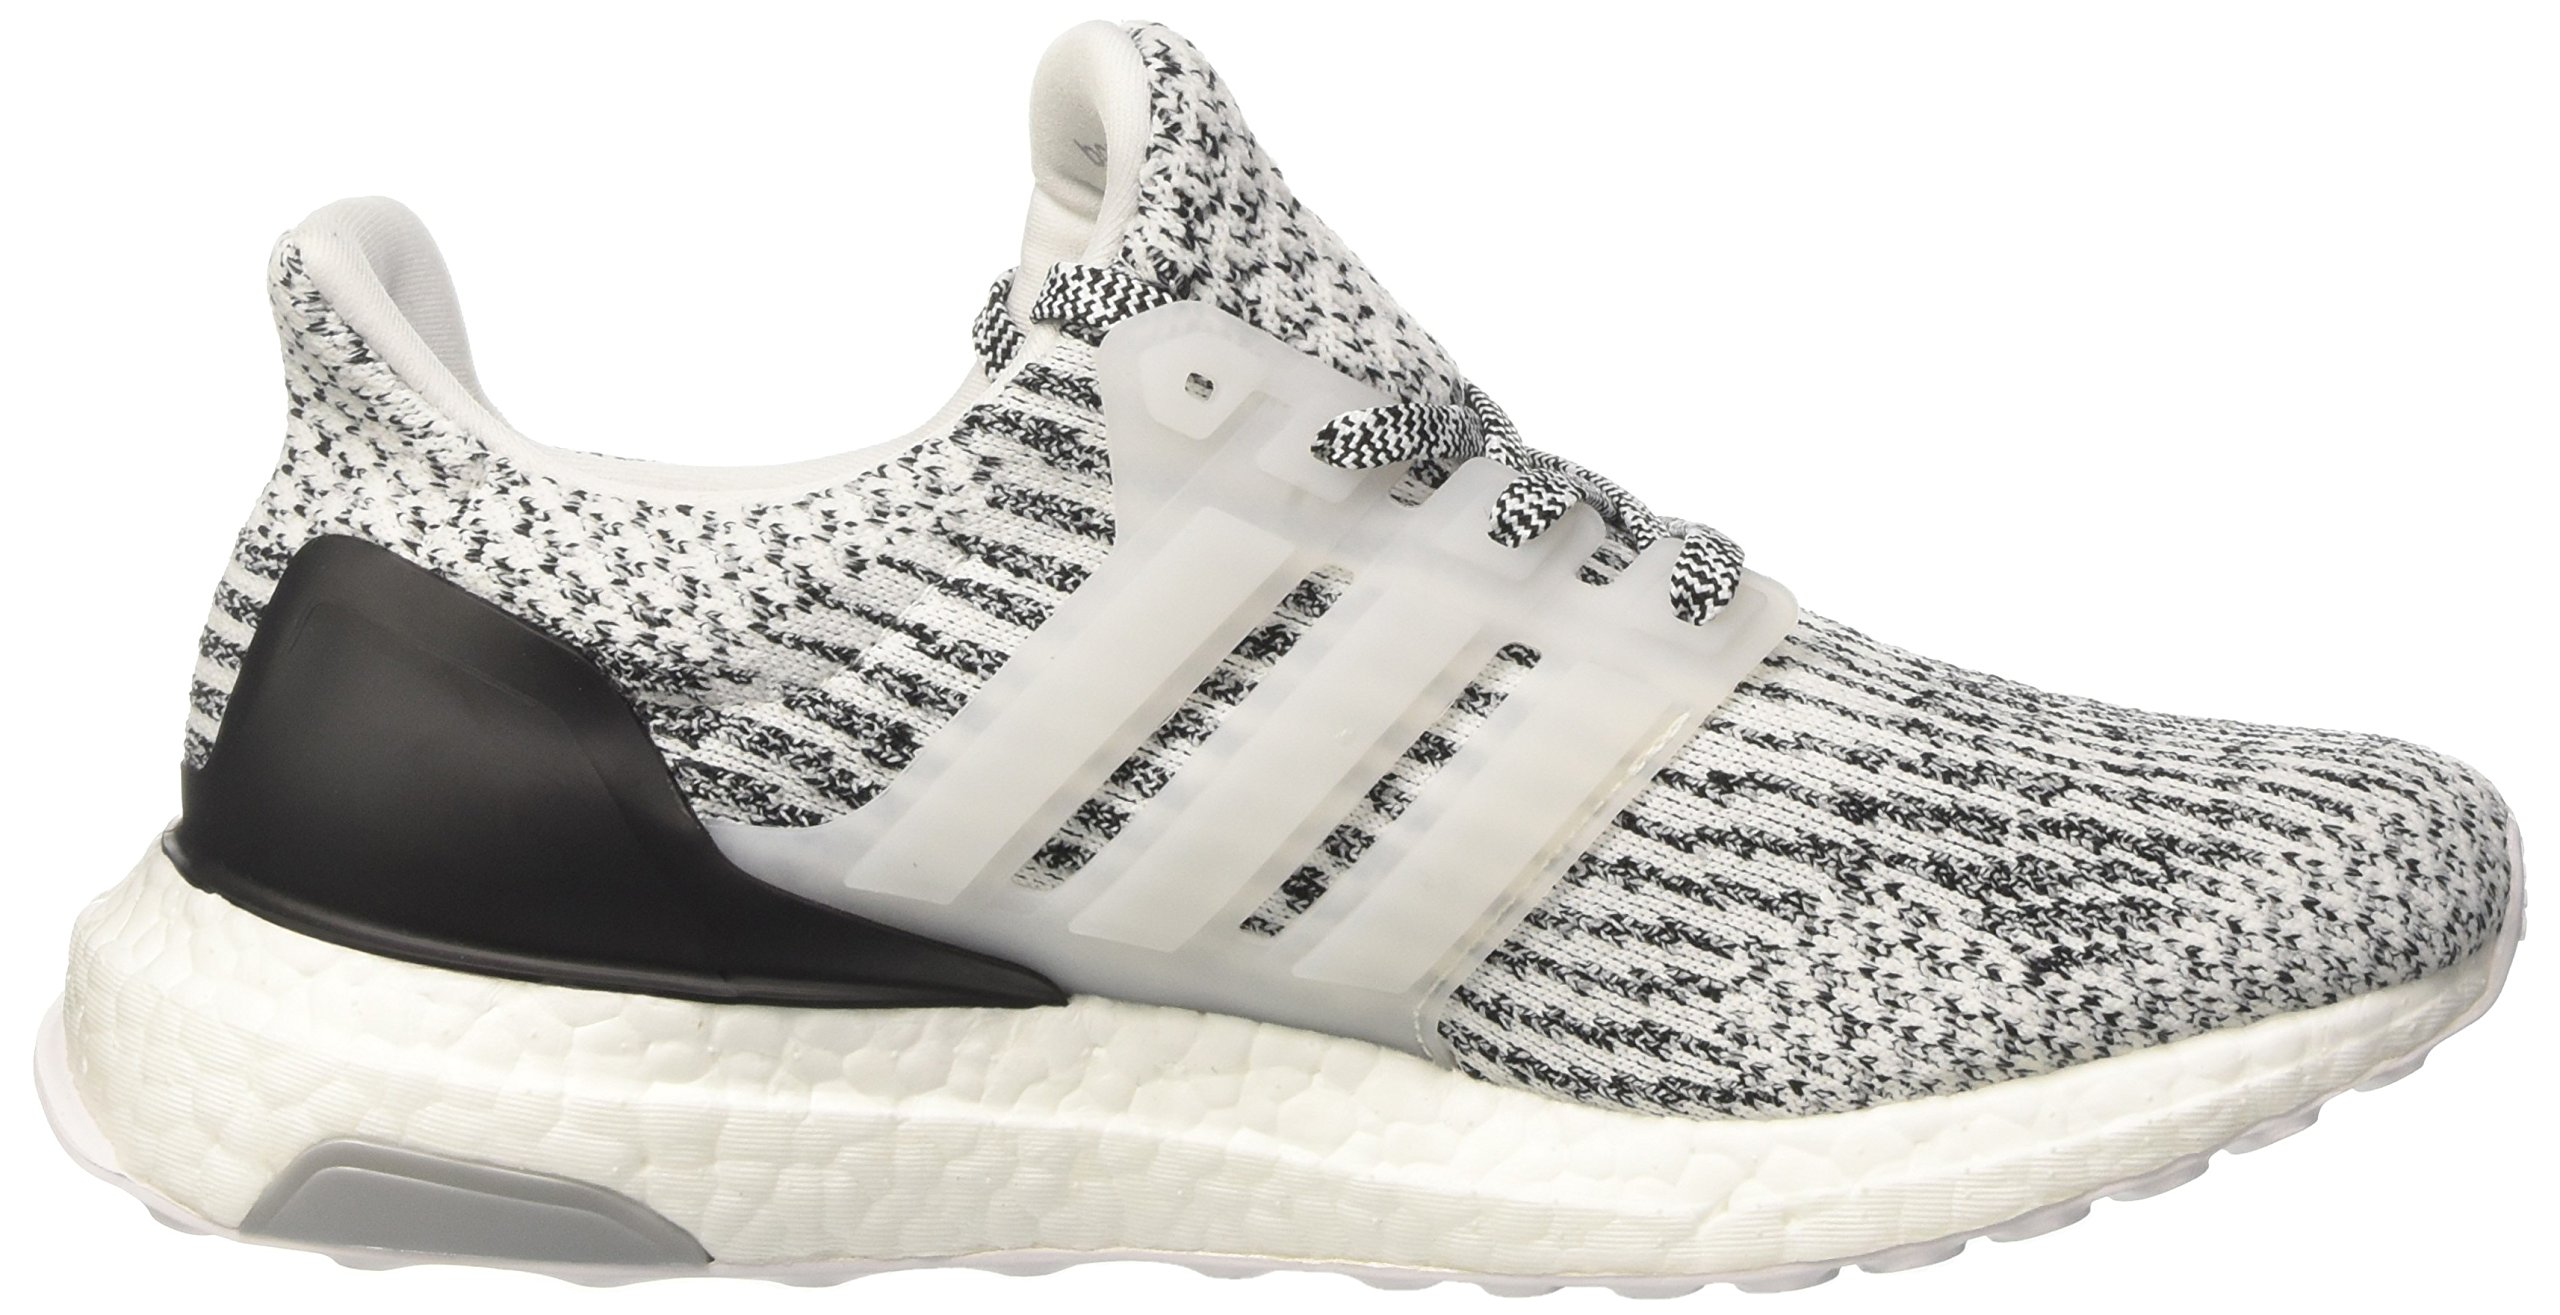 81W2H4TtbZL - adidas Men's Ultraboost Running Shoes